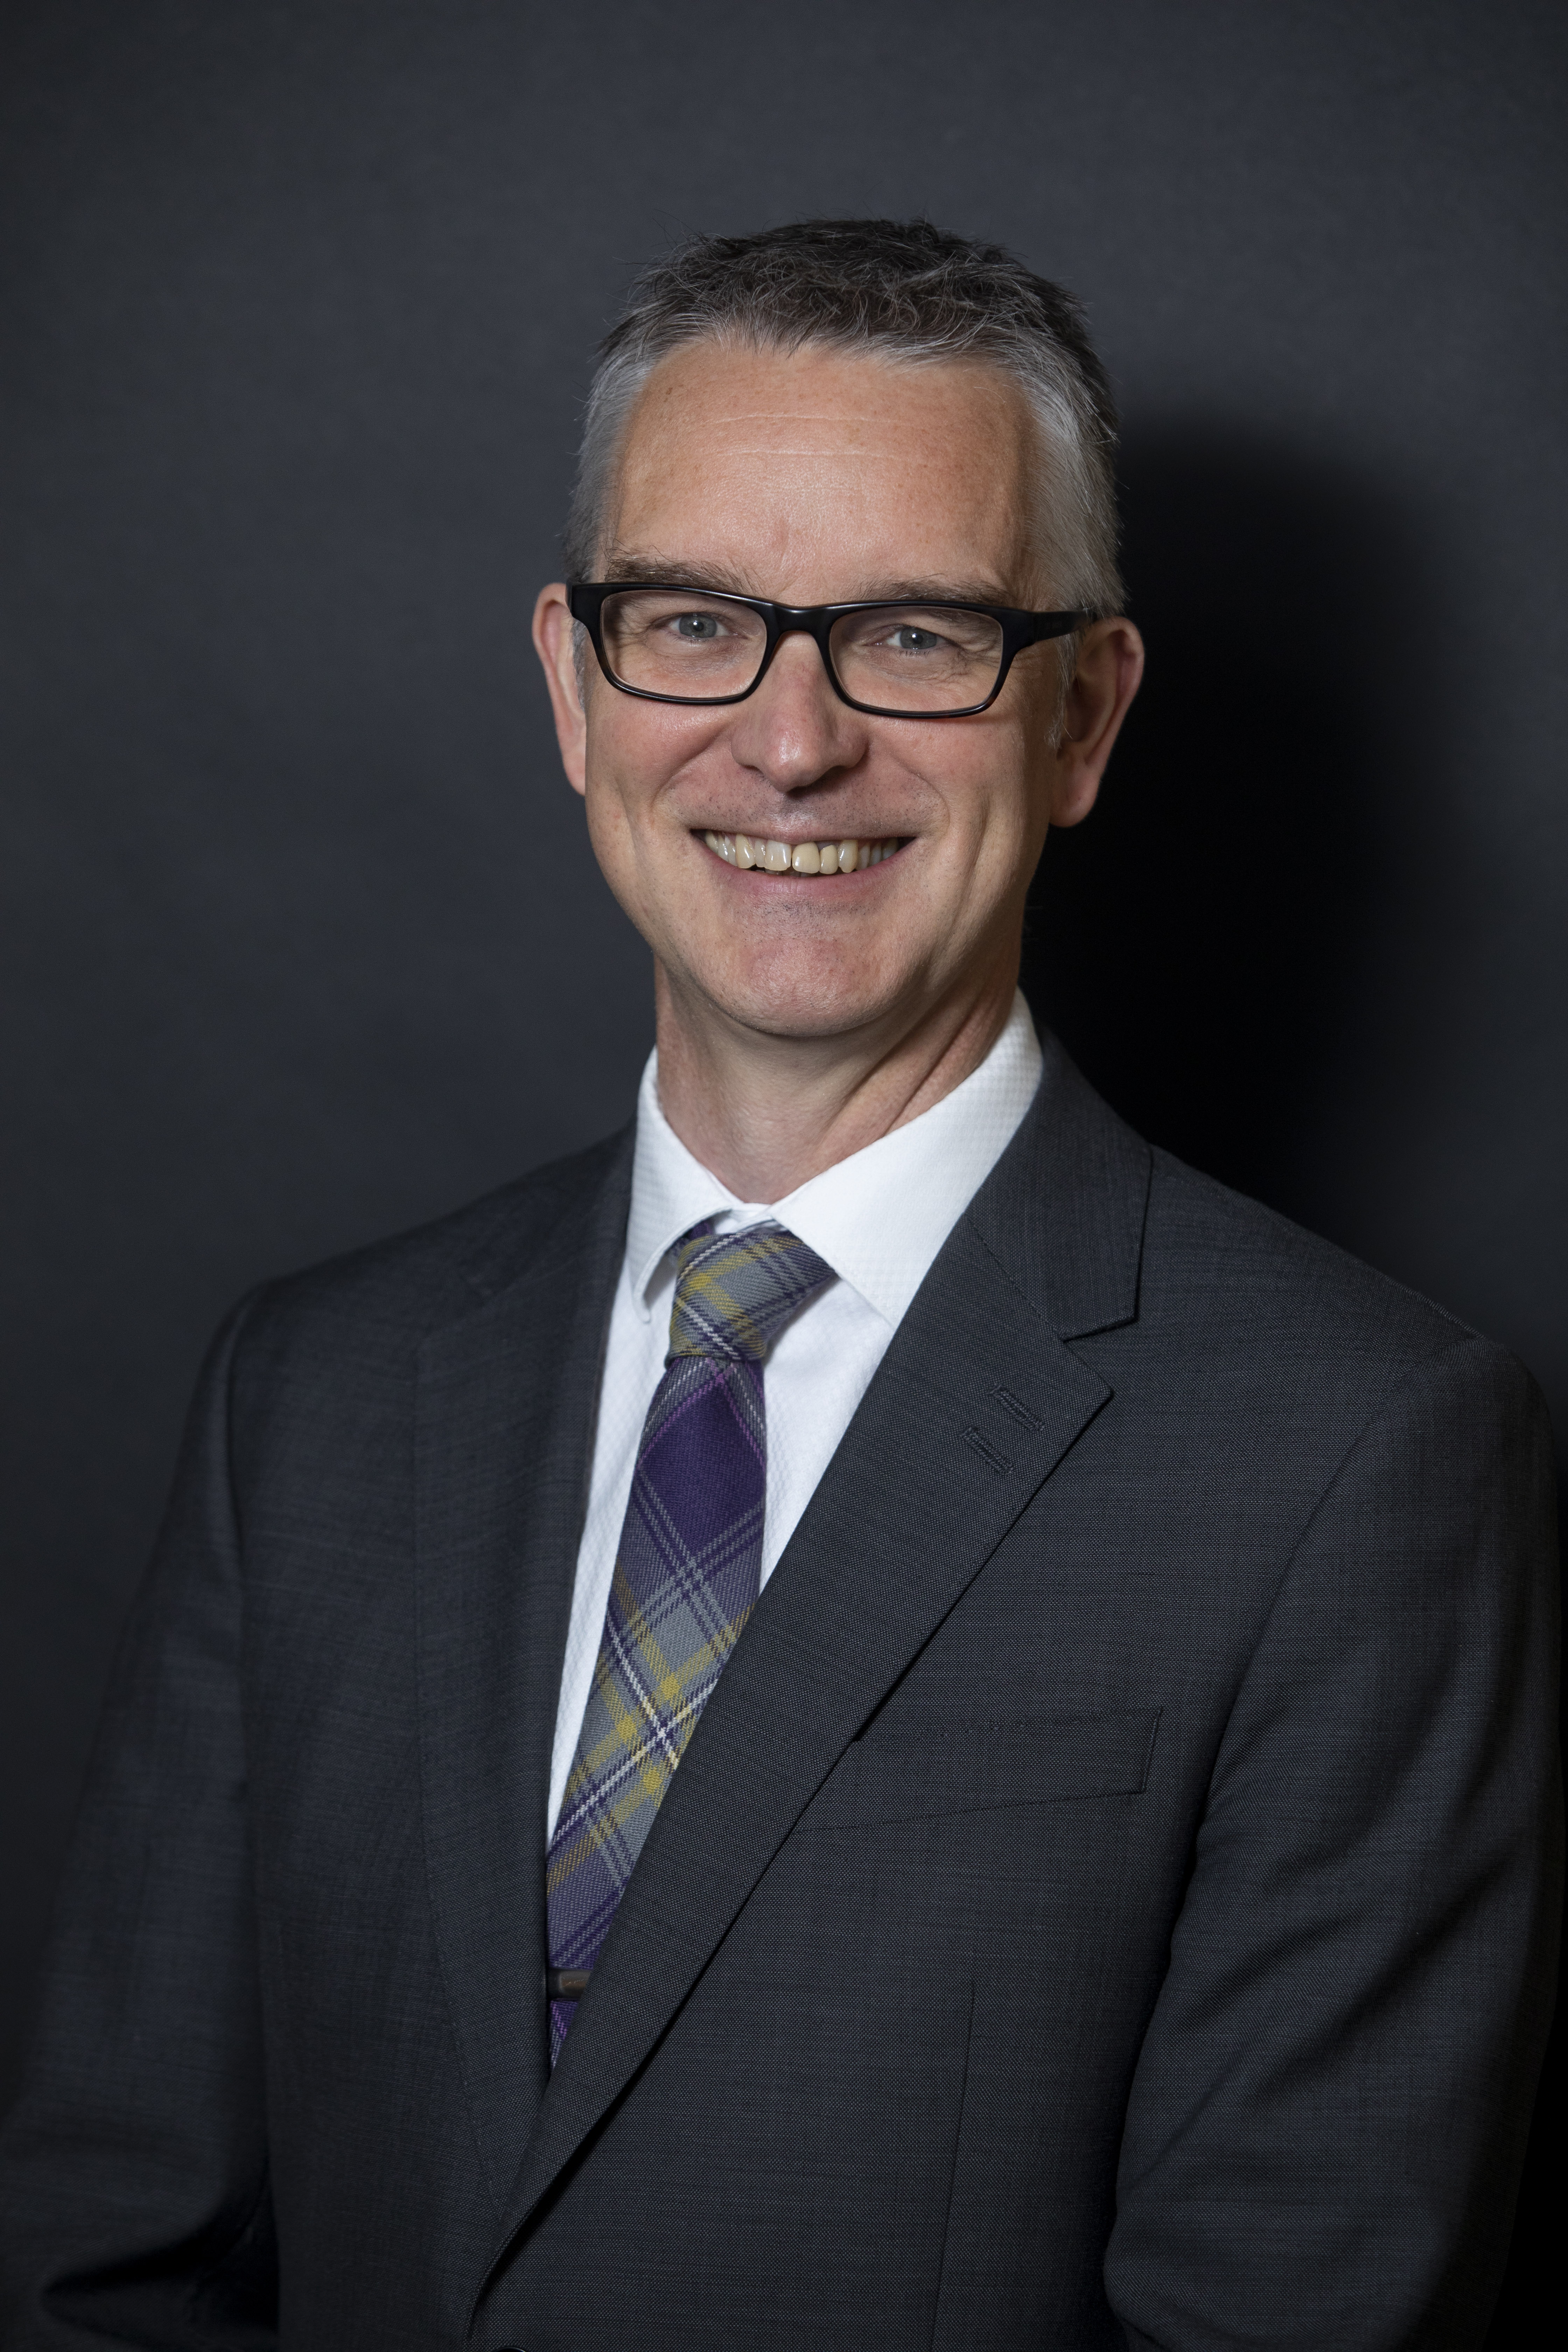 Alasdair Smith, Chief Executive